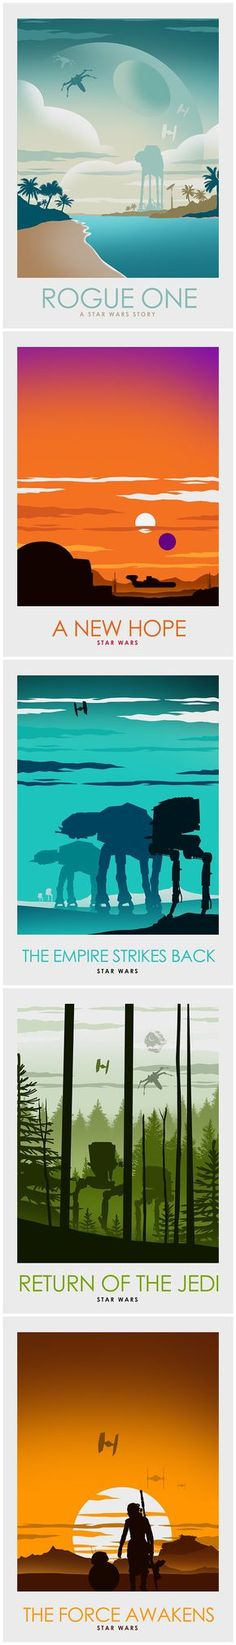 Star Wars Minimalist Poster Series - Created by Ciaran Monaghan